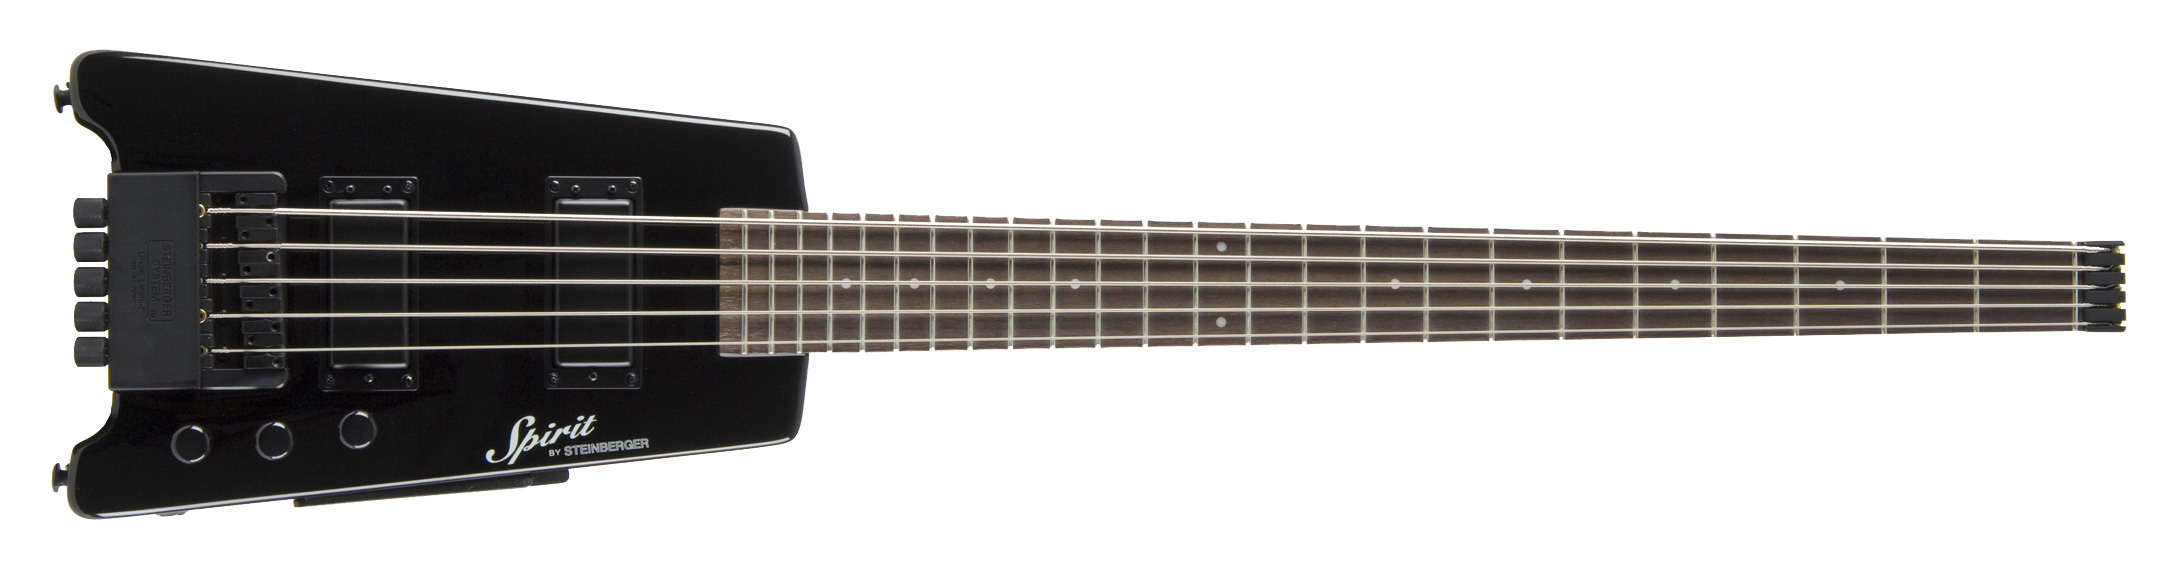 STEINBERGER Spirit XT-25 Standard Bass Black